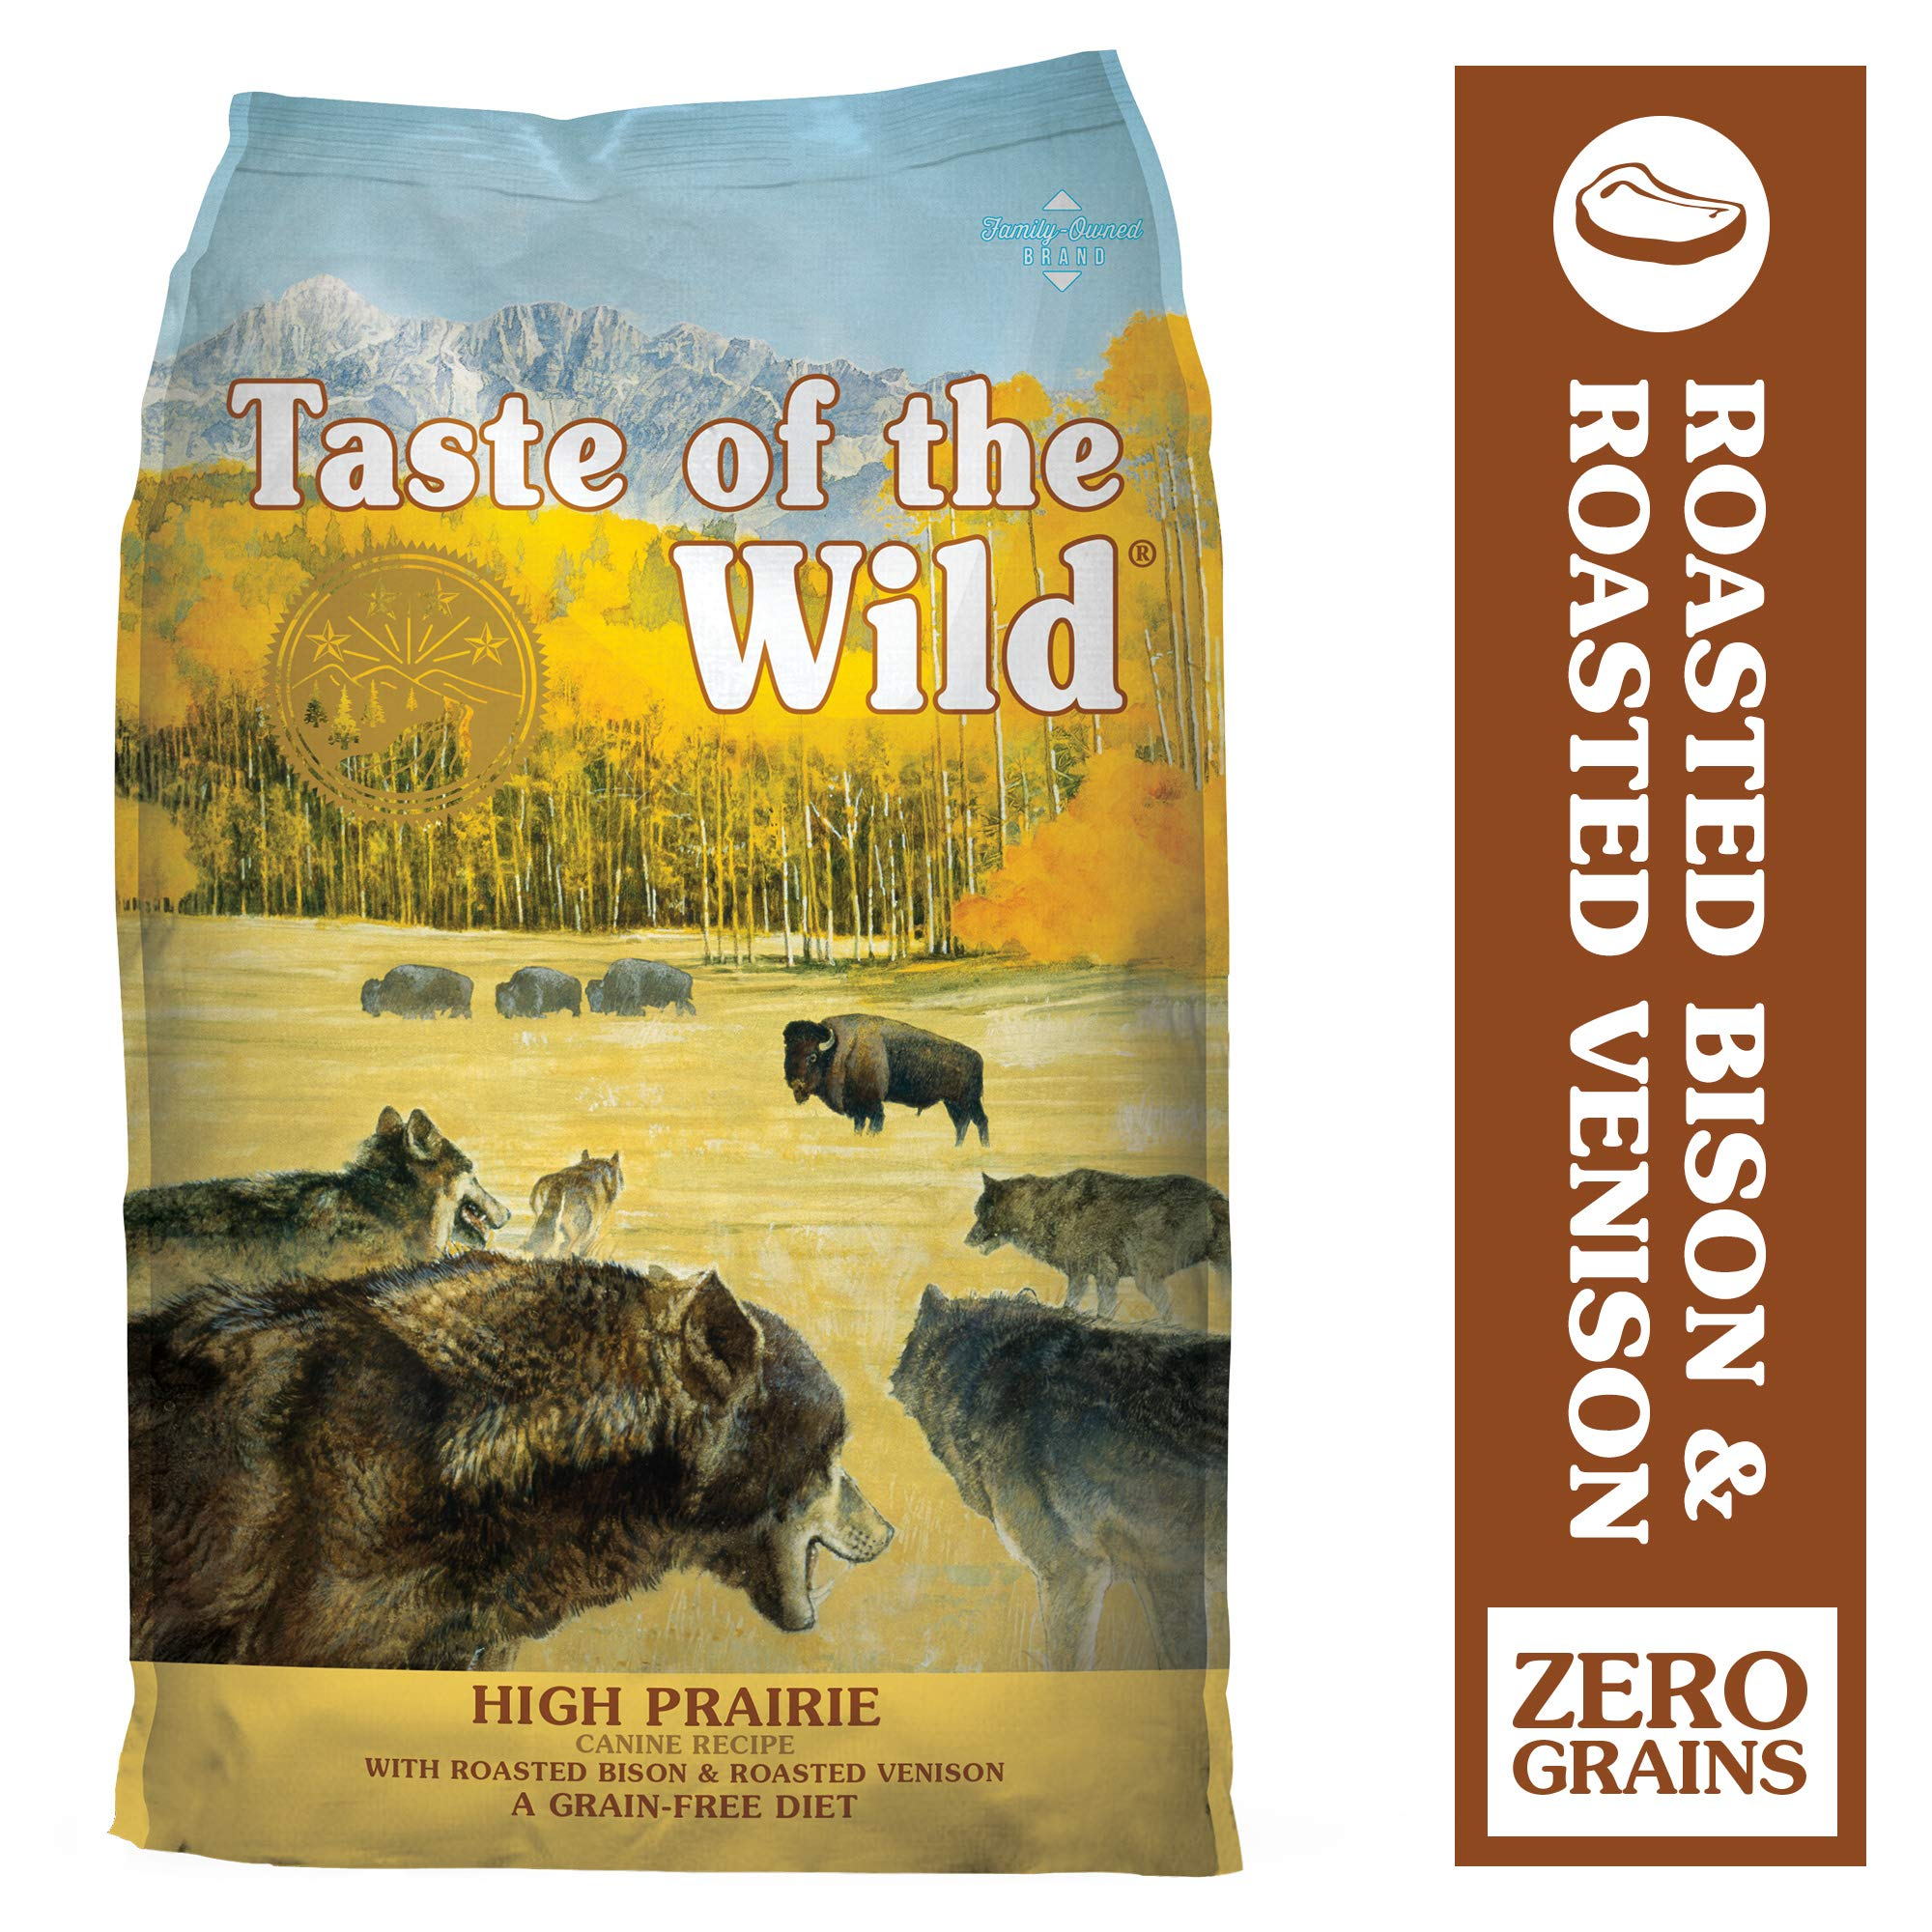 Taste of the Wild High Prairie Grain-Free Dry Dog Food with Roasted Bison & Venison 28lb by Taste of the Wild